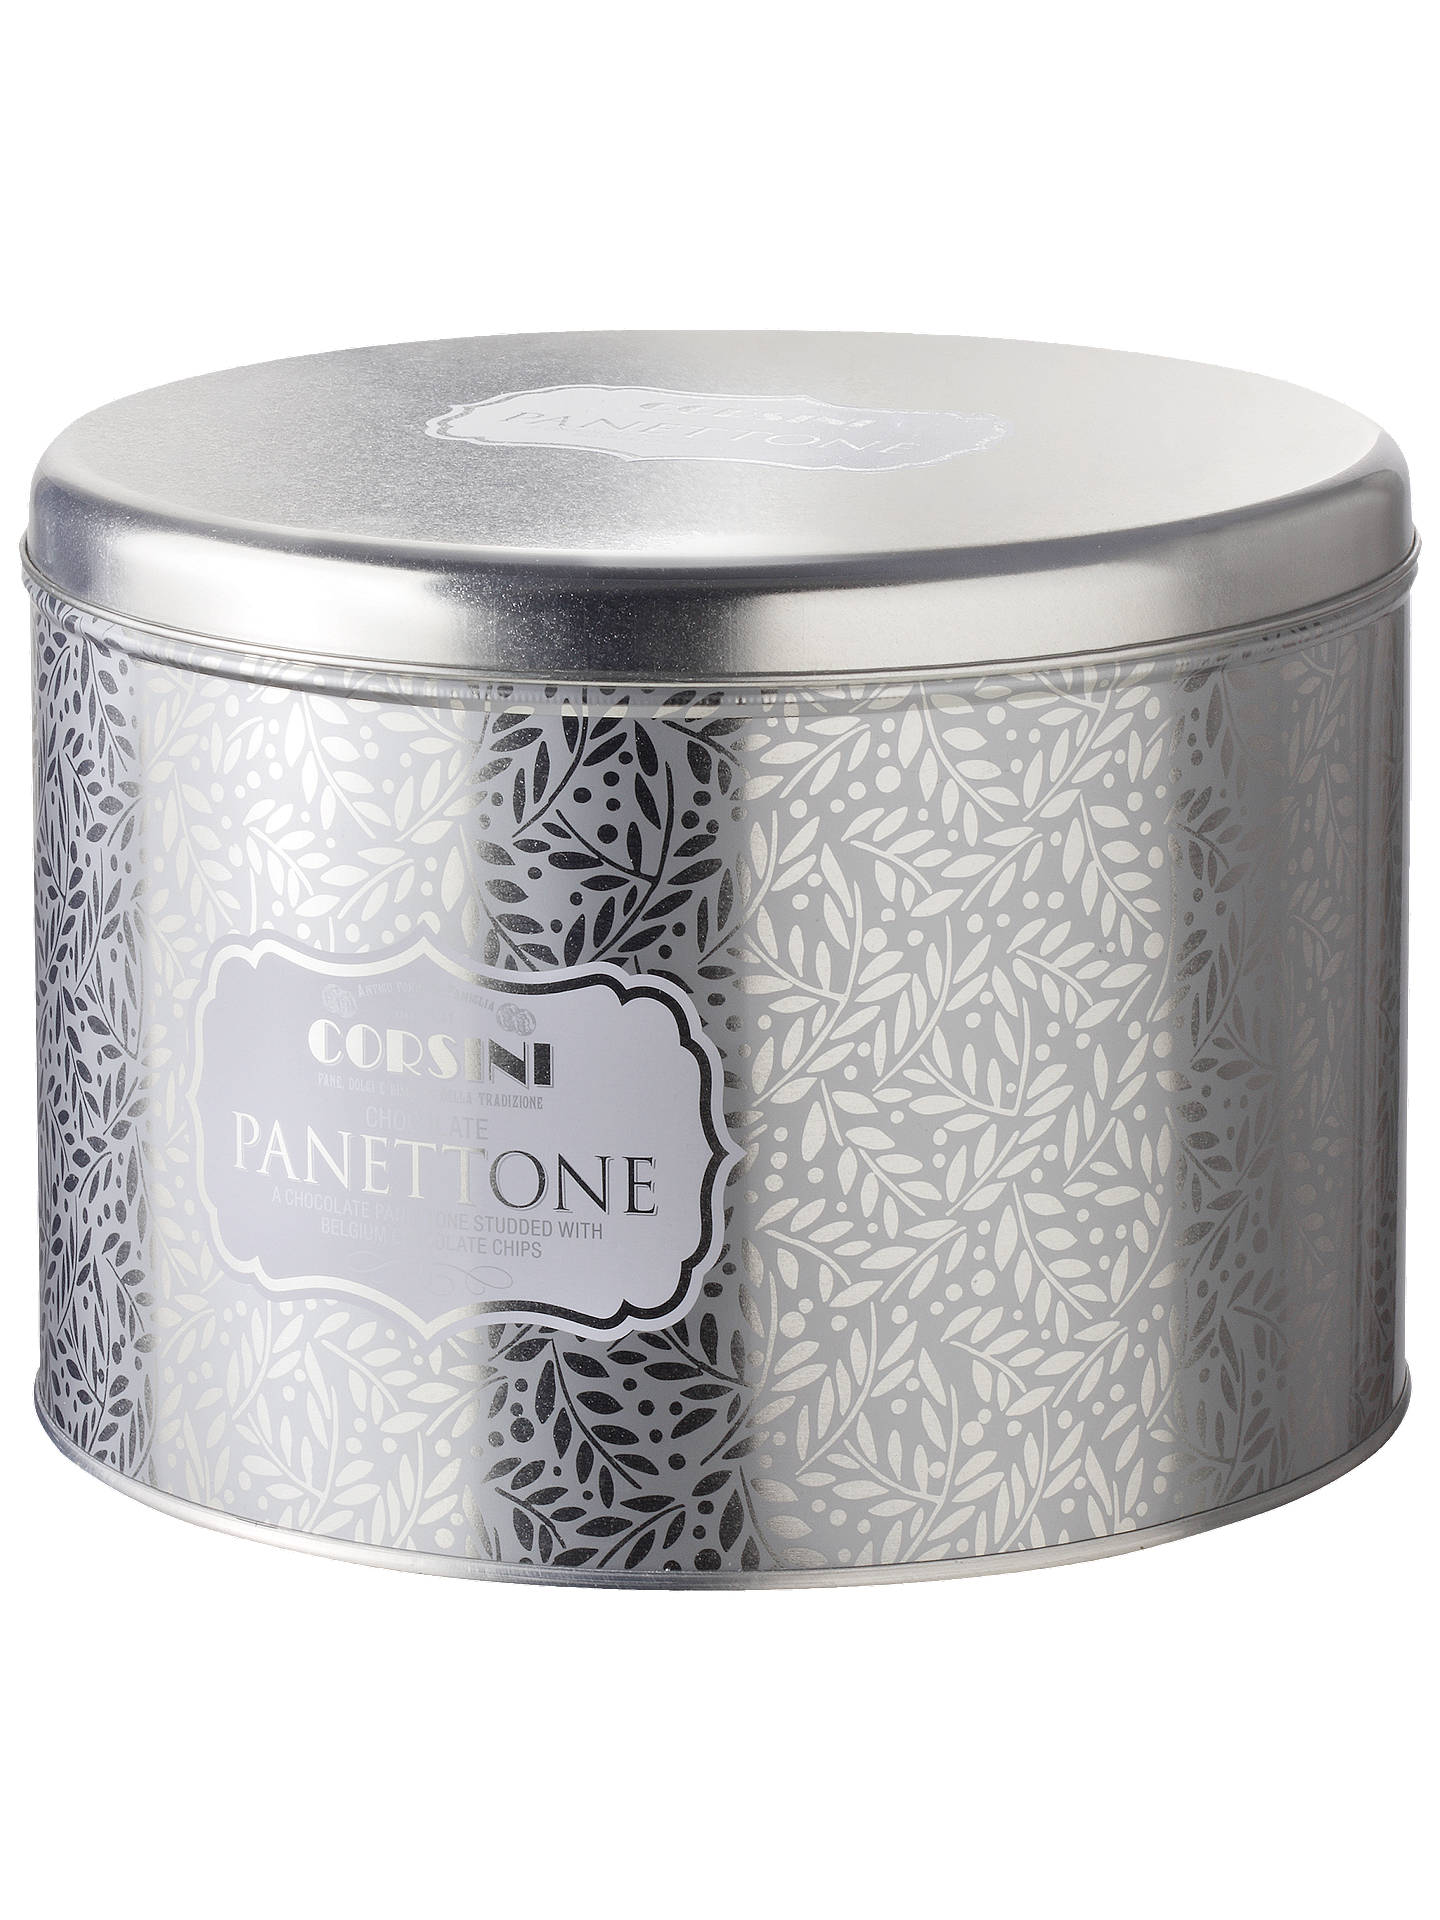 Corsini Silver Tin Chocolate Panettone 1kg At John Lewis